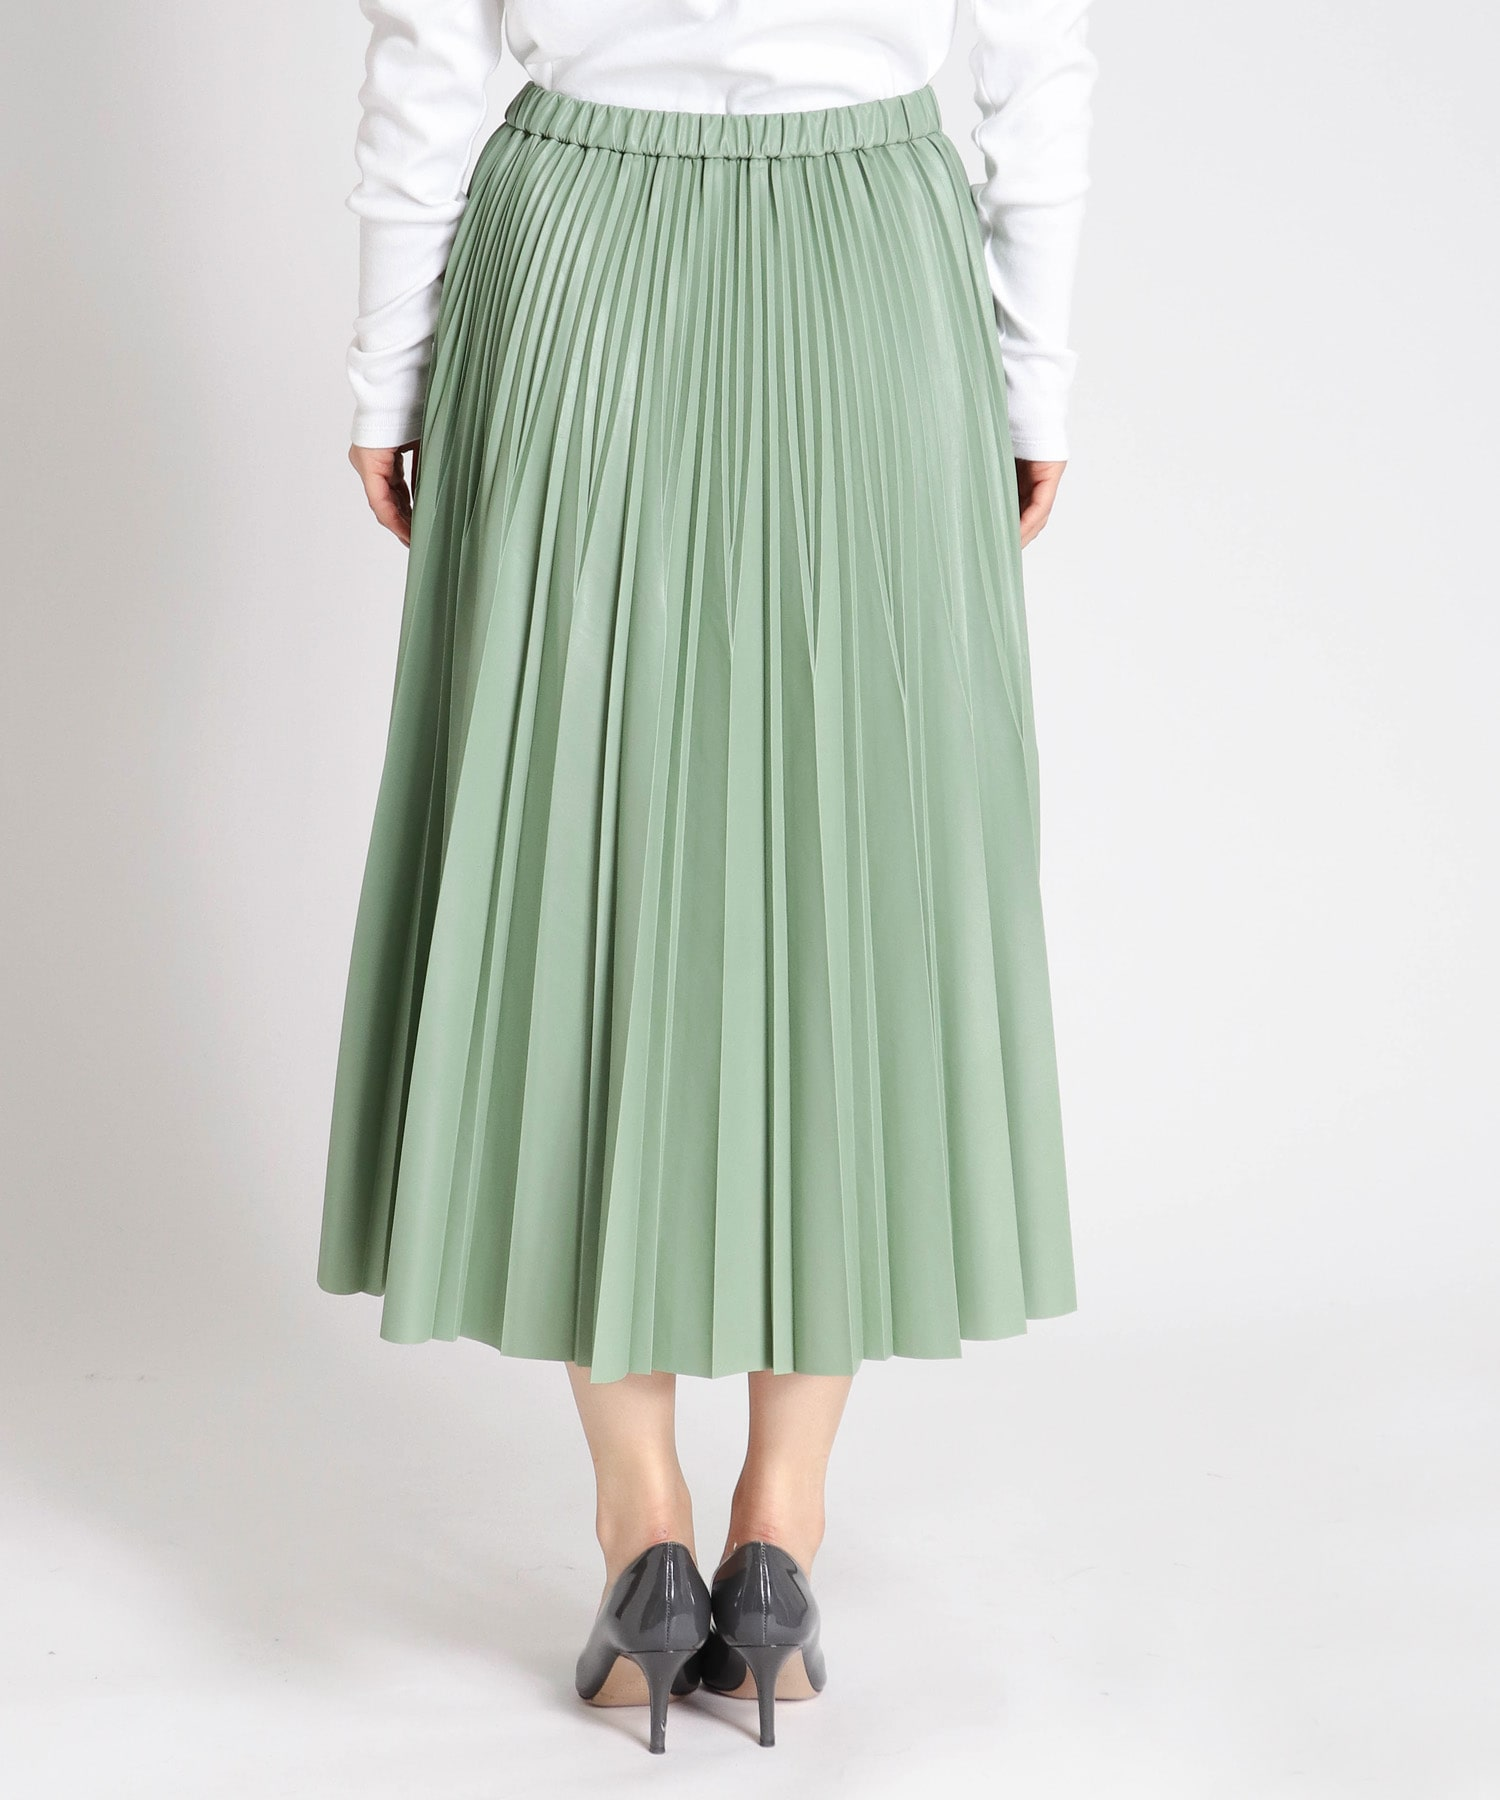 light eco leather pleats skirt